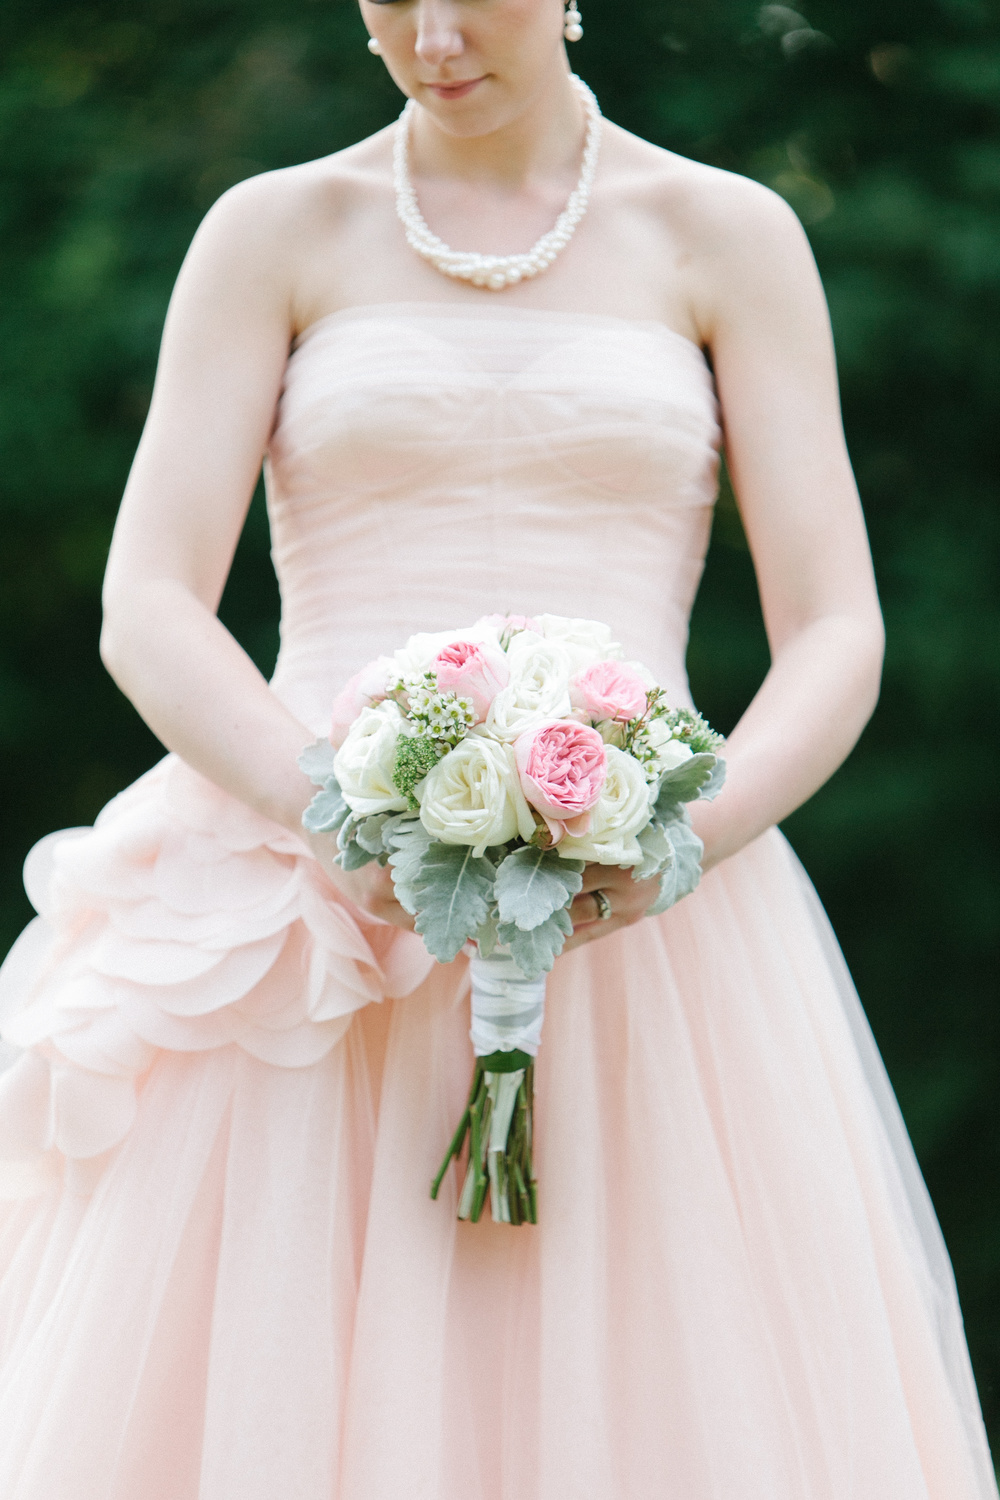 Pretty Pink and White Wedding Bouquet with Bride in Pink Vera Wang Gown | photo by blf Studios | flowers by Norwood Florist | wedding by Madeline's Weddings